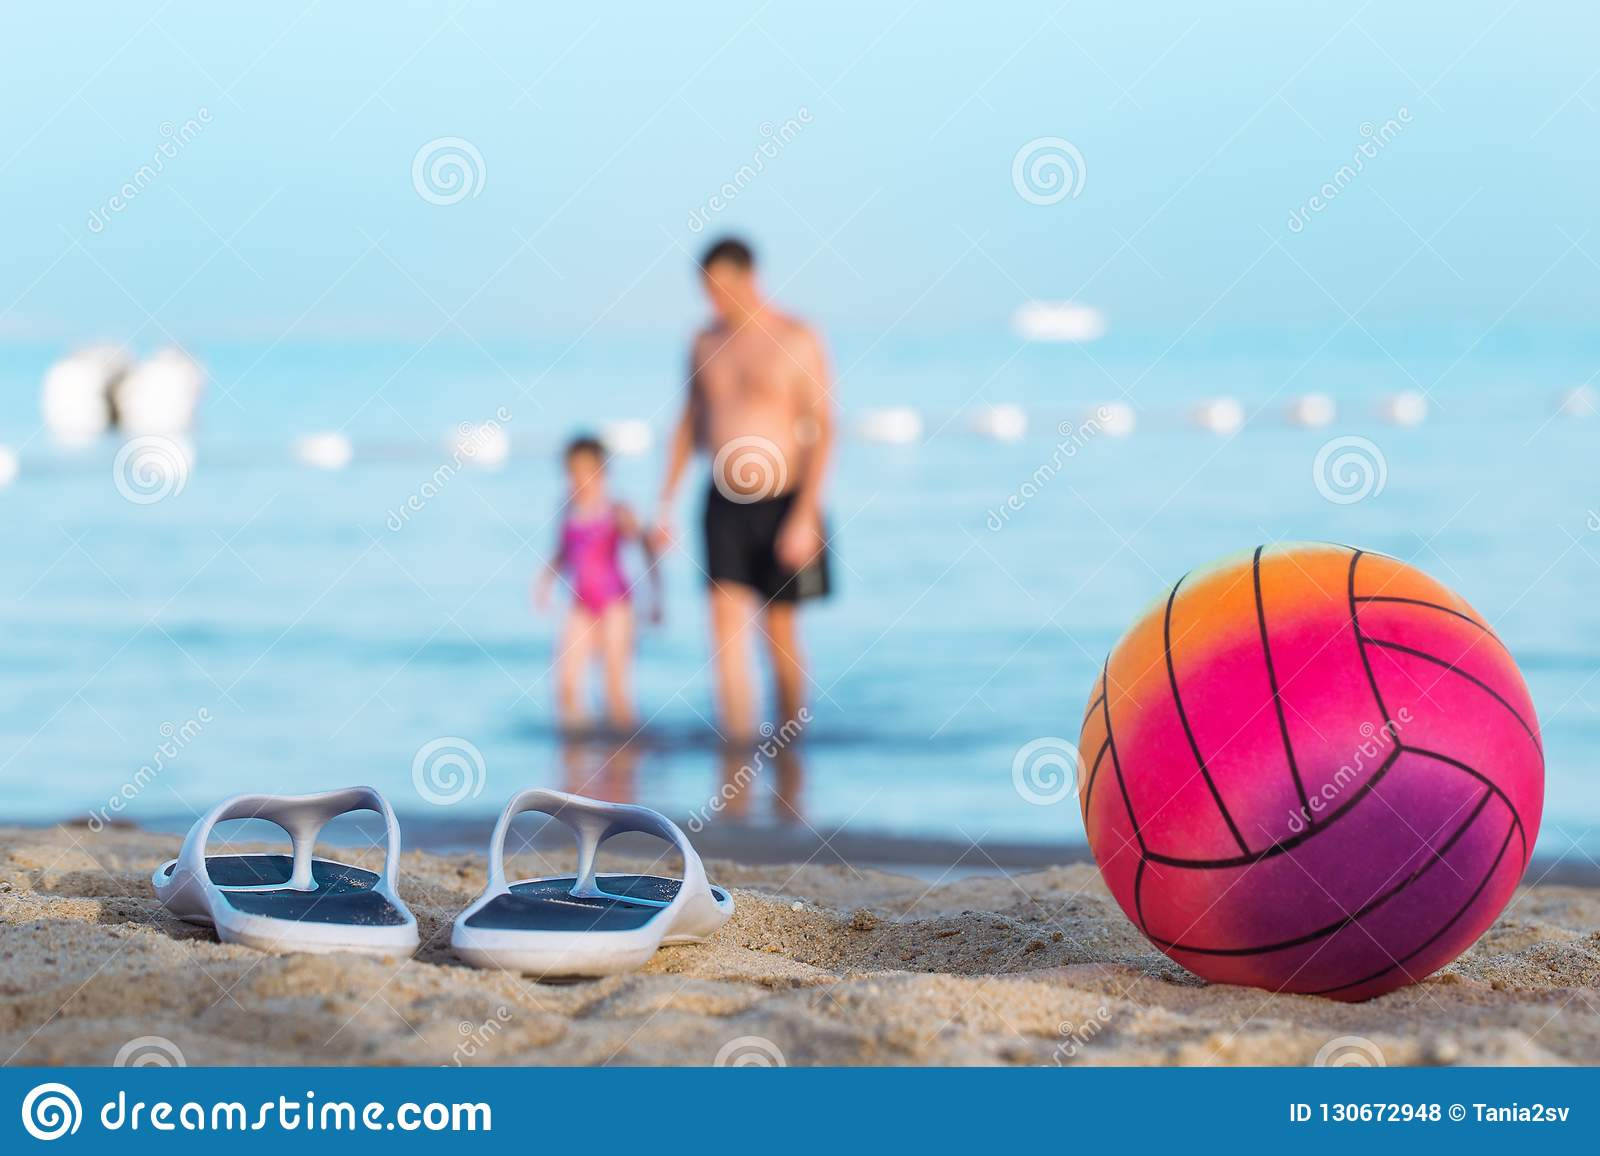 a943115a2937cc Father with daughter coming out of the water on the summer beach blurred  out with flip flops and a beach ball in the foreground